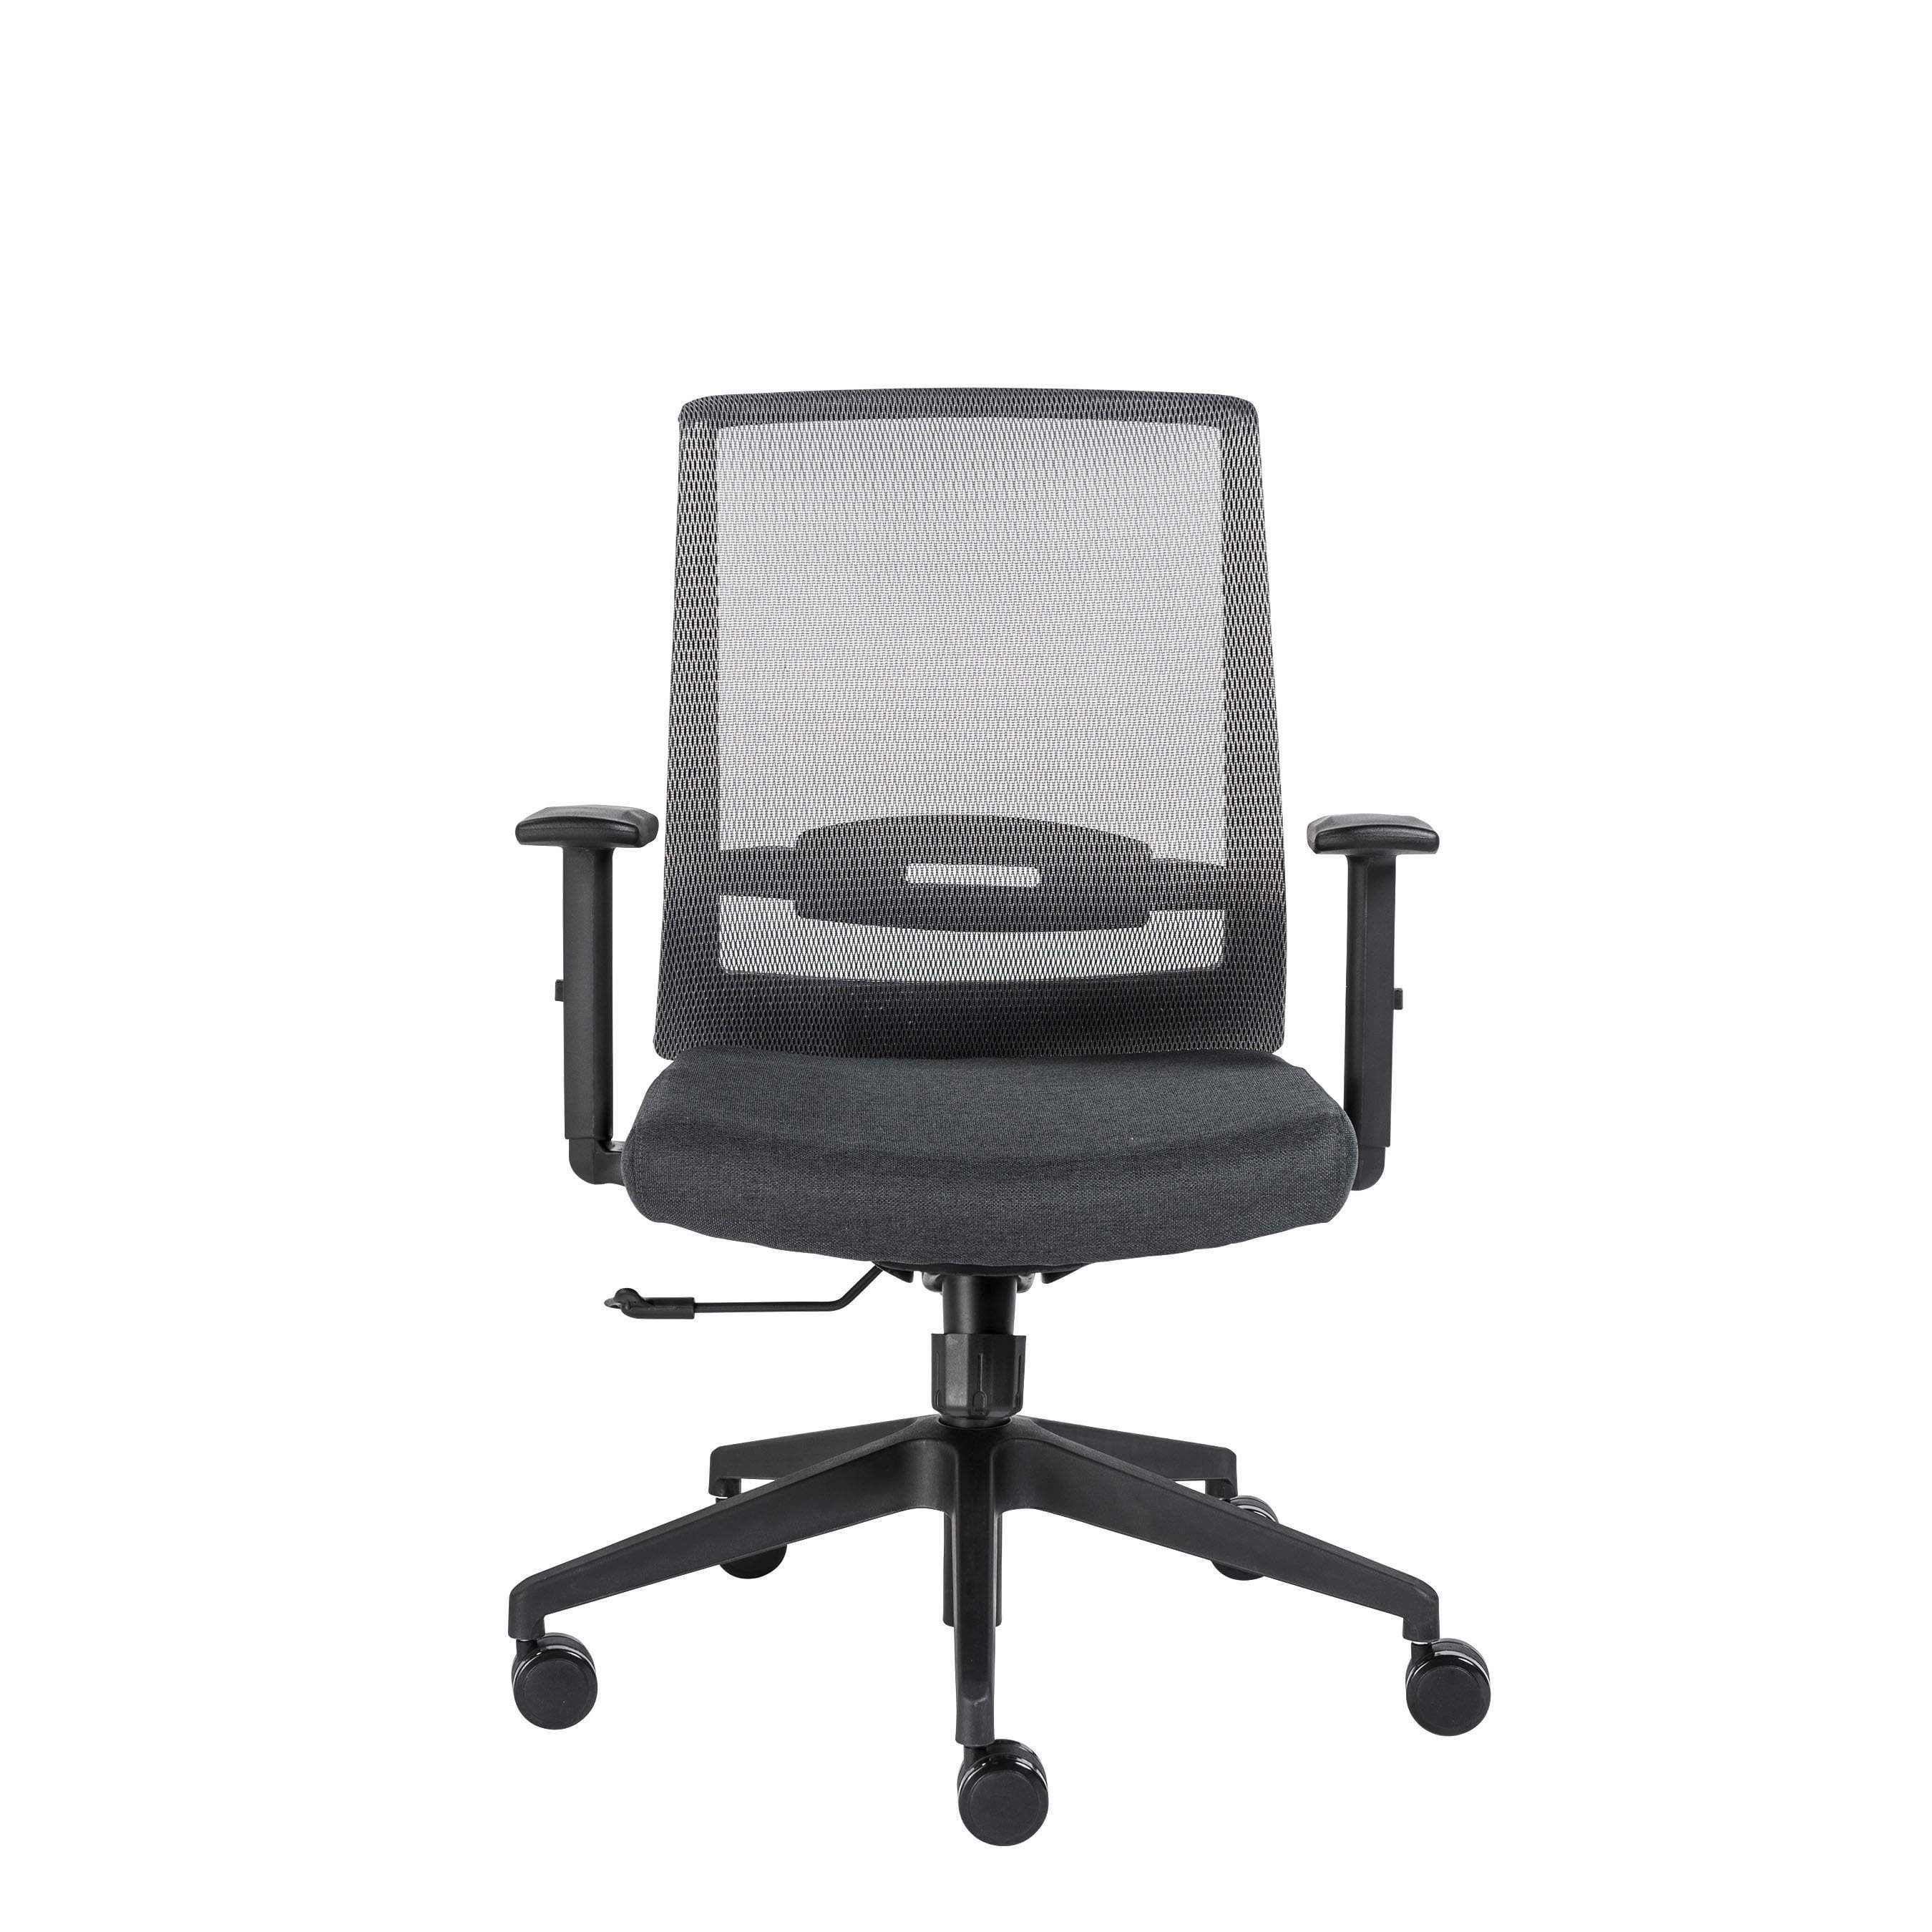 Fiona office chair with adjustable arms mesh office